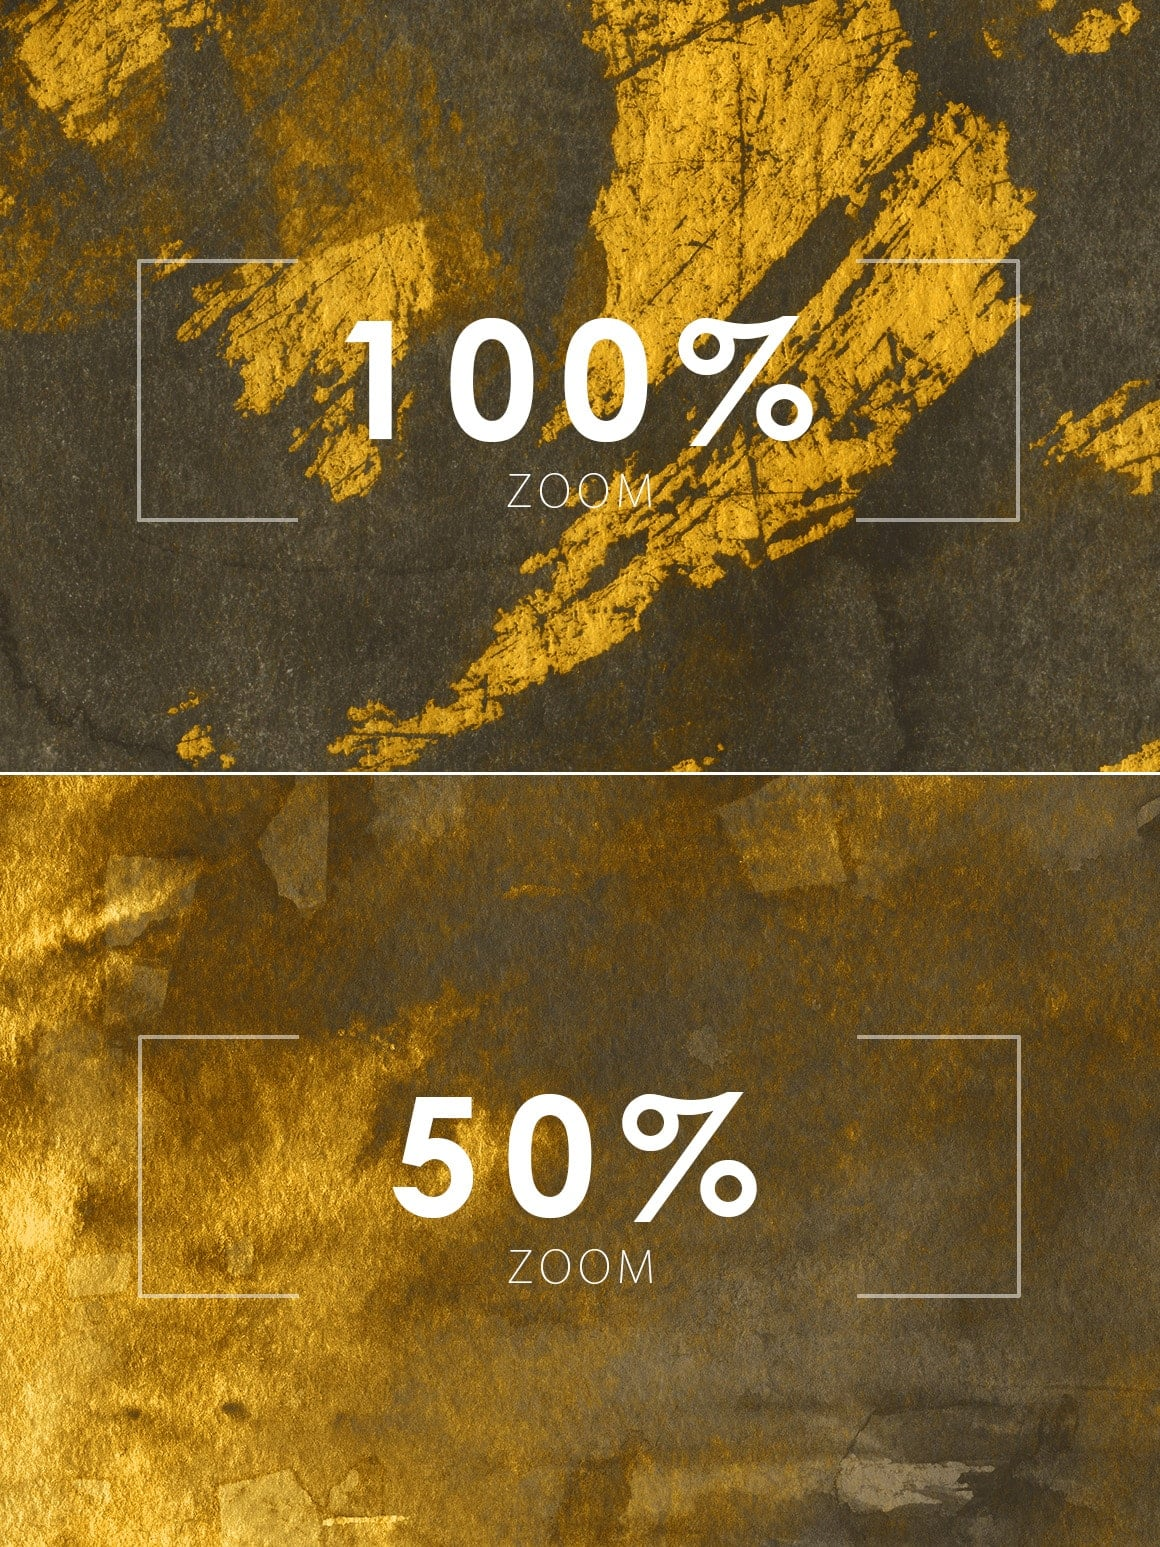 Ink&Marble Backgrounds & Textures Bundle: 900+ IMAGES - $18 Only - Gold Ink Textures prev3 min